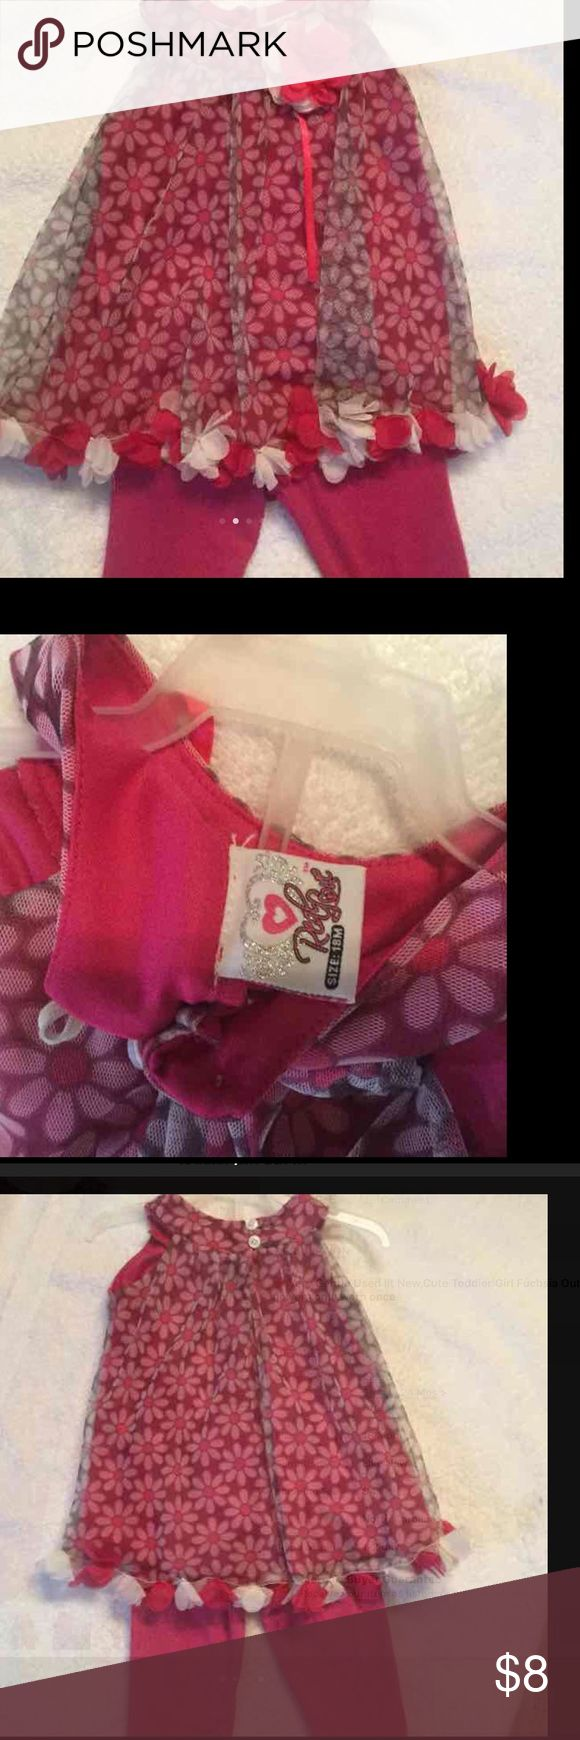 Cute Toddler Girl Outfit ❤️️Very Gentle Used lit New,Cute Toddler Girl Fuchsia Outfit with flowers only worn once Matching Sets